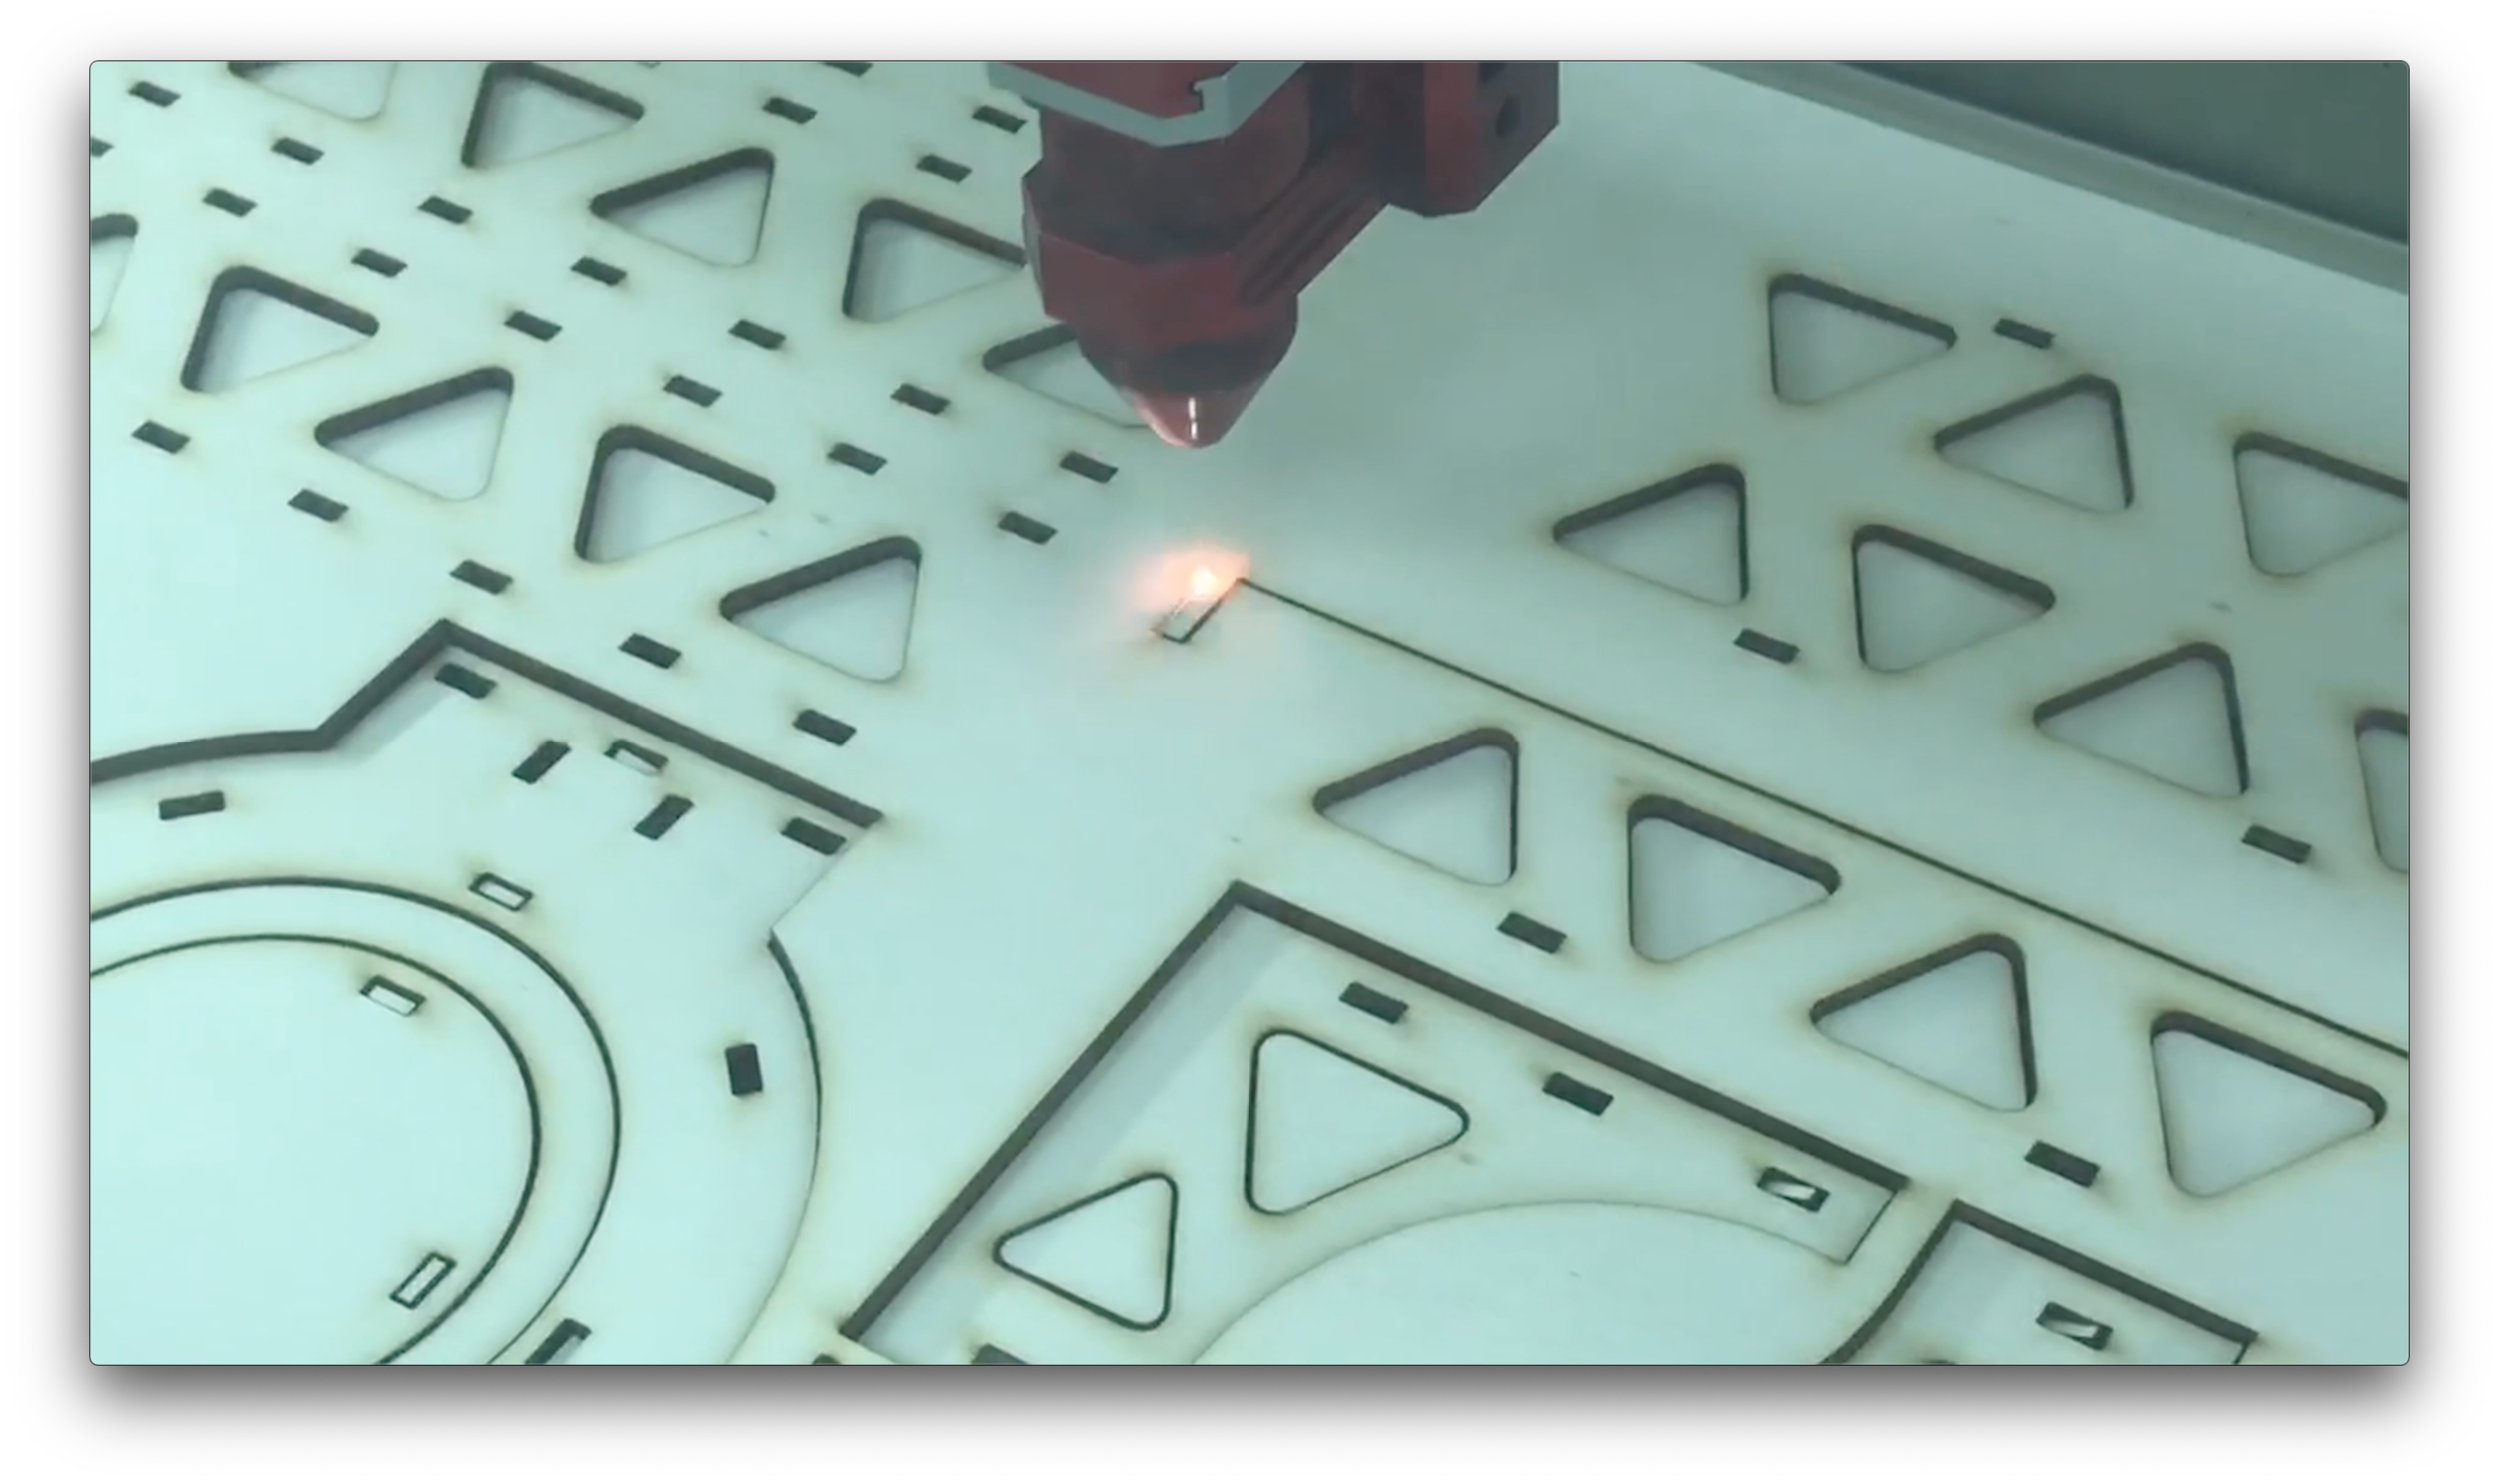 Laser-cutting the pie holder